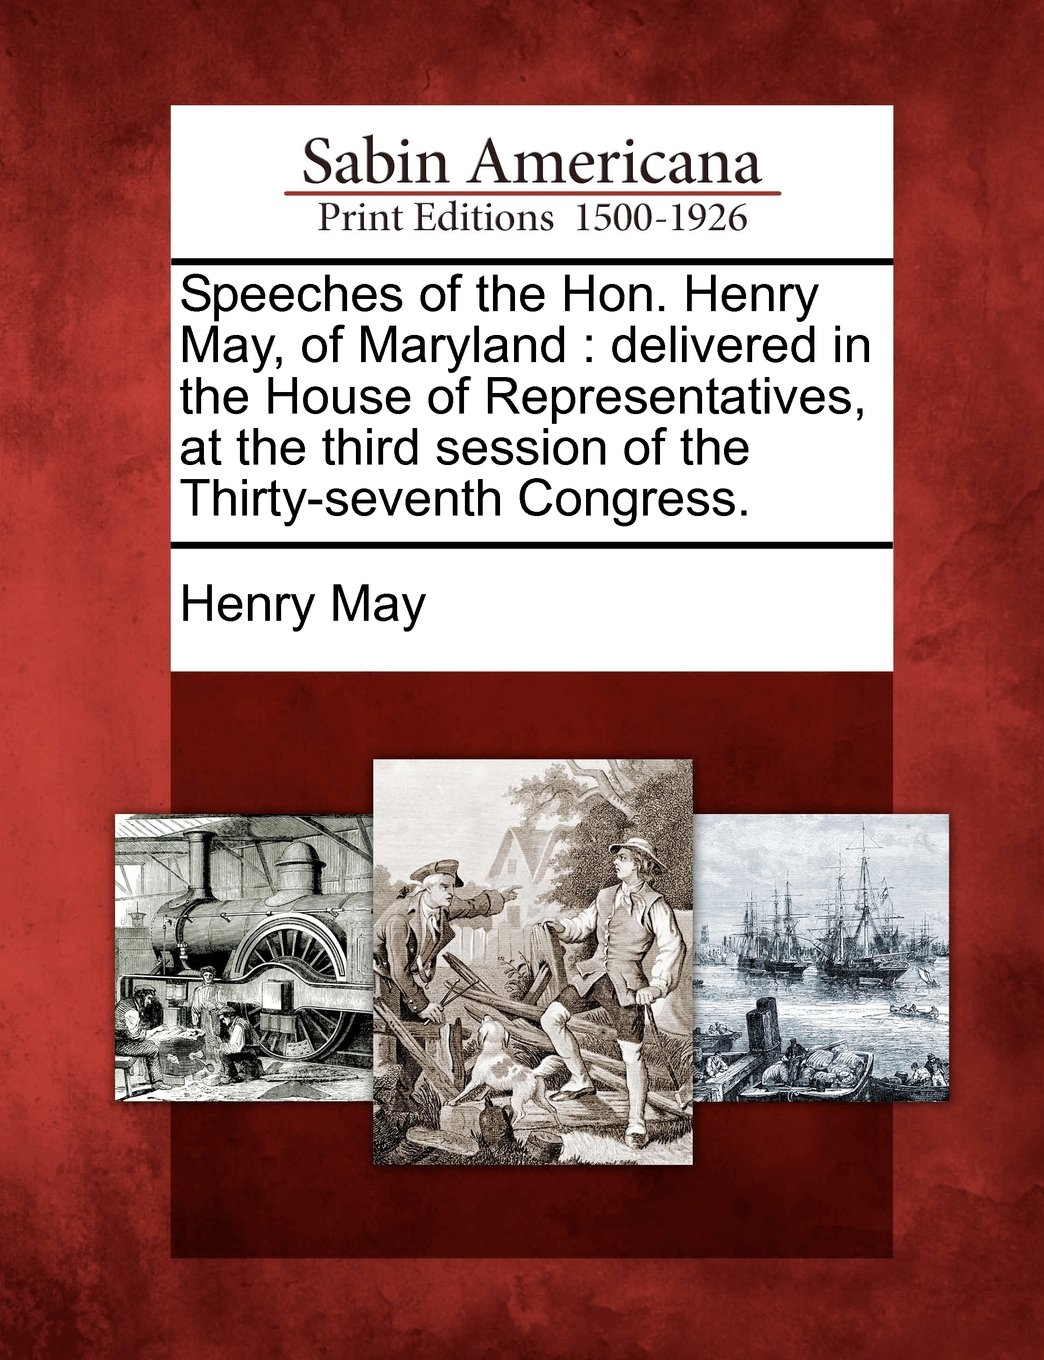 Download Speeches of the Hon. Henry May, of Maryland: delivered in the House of Representatives, at the third session of the Thirty-seventh Congress. pdf